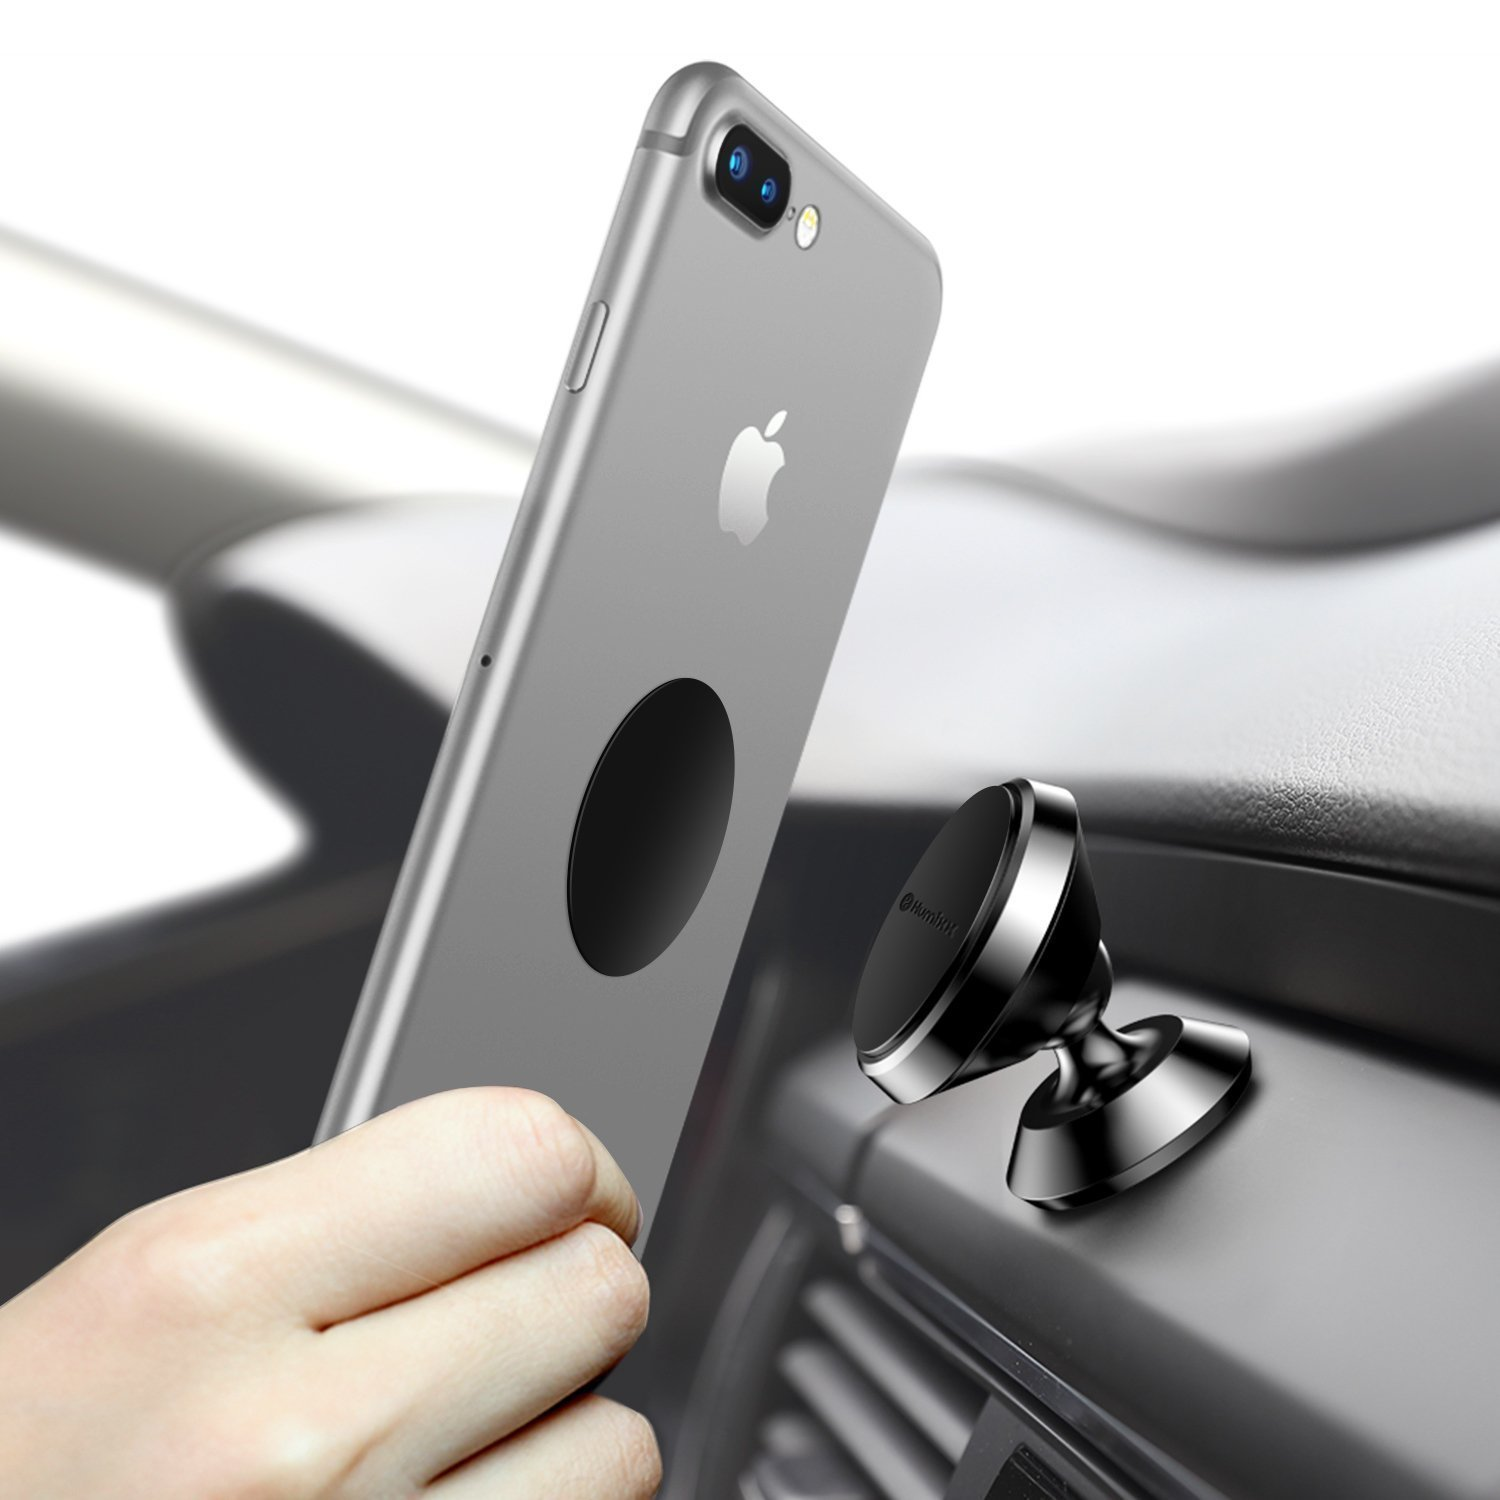 Magnetic Phone Holder for Car, Humixx 360° Adjustable Dashboard Cellphone Car Mount Holder for iPhone 8 8 Plus 7 7 Plus,Samsung S7 S8, HTC, LG, ZTE [Easy Series] -Black